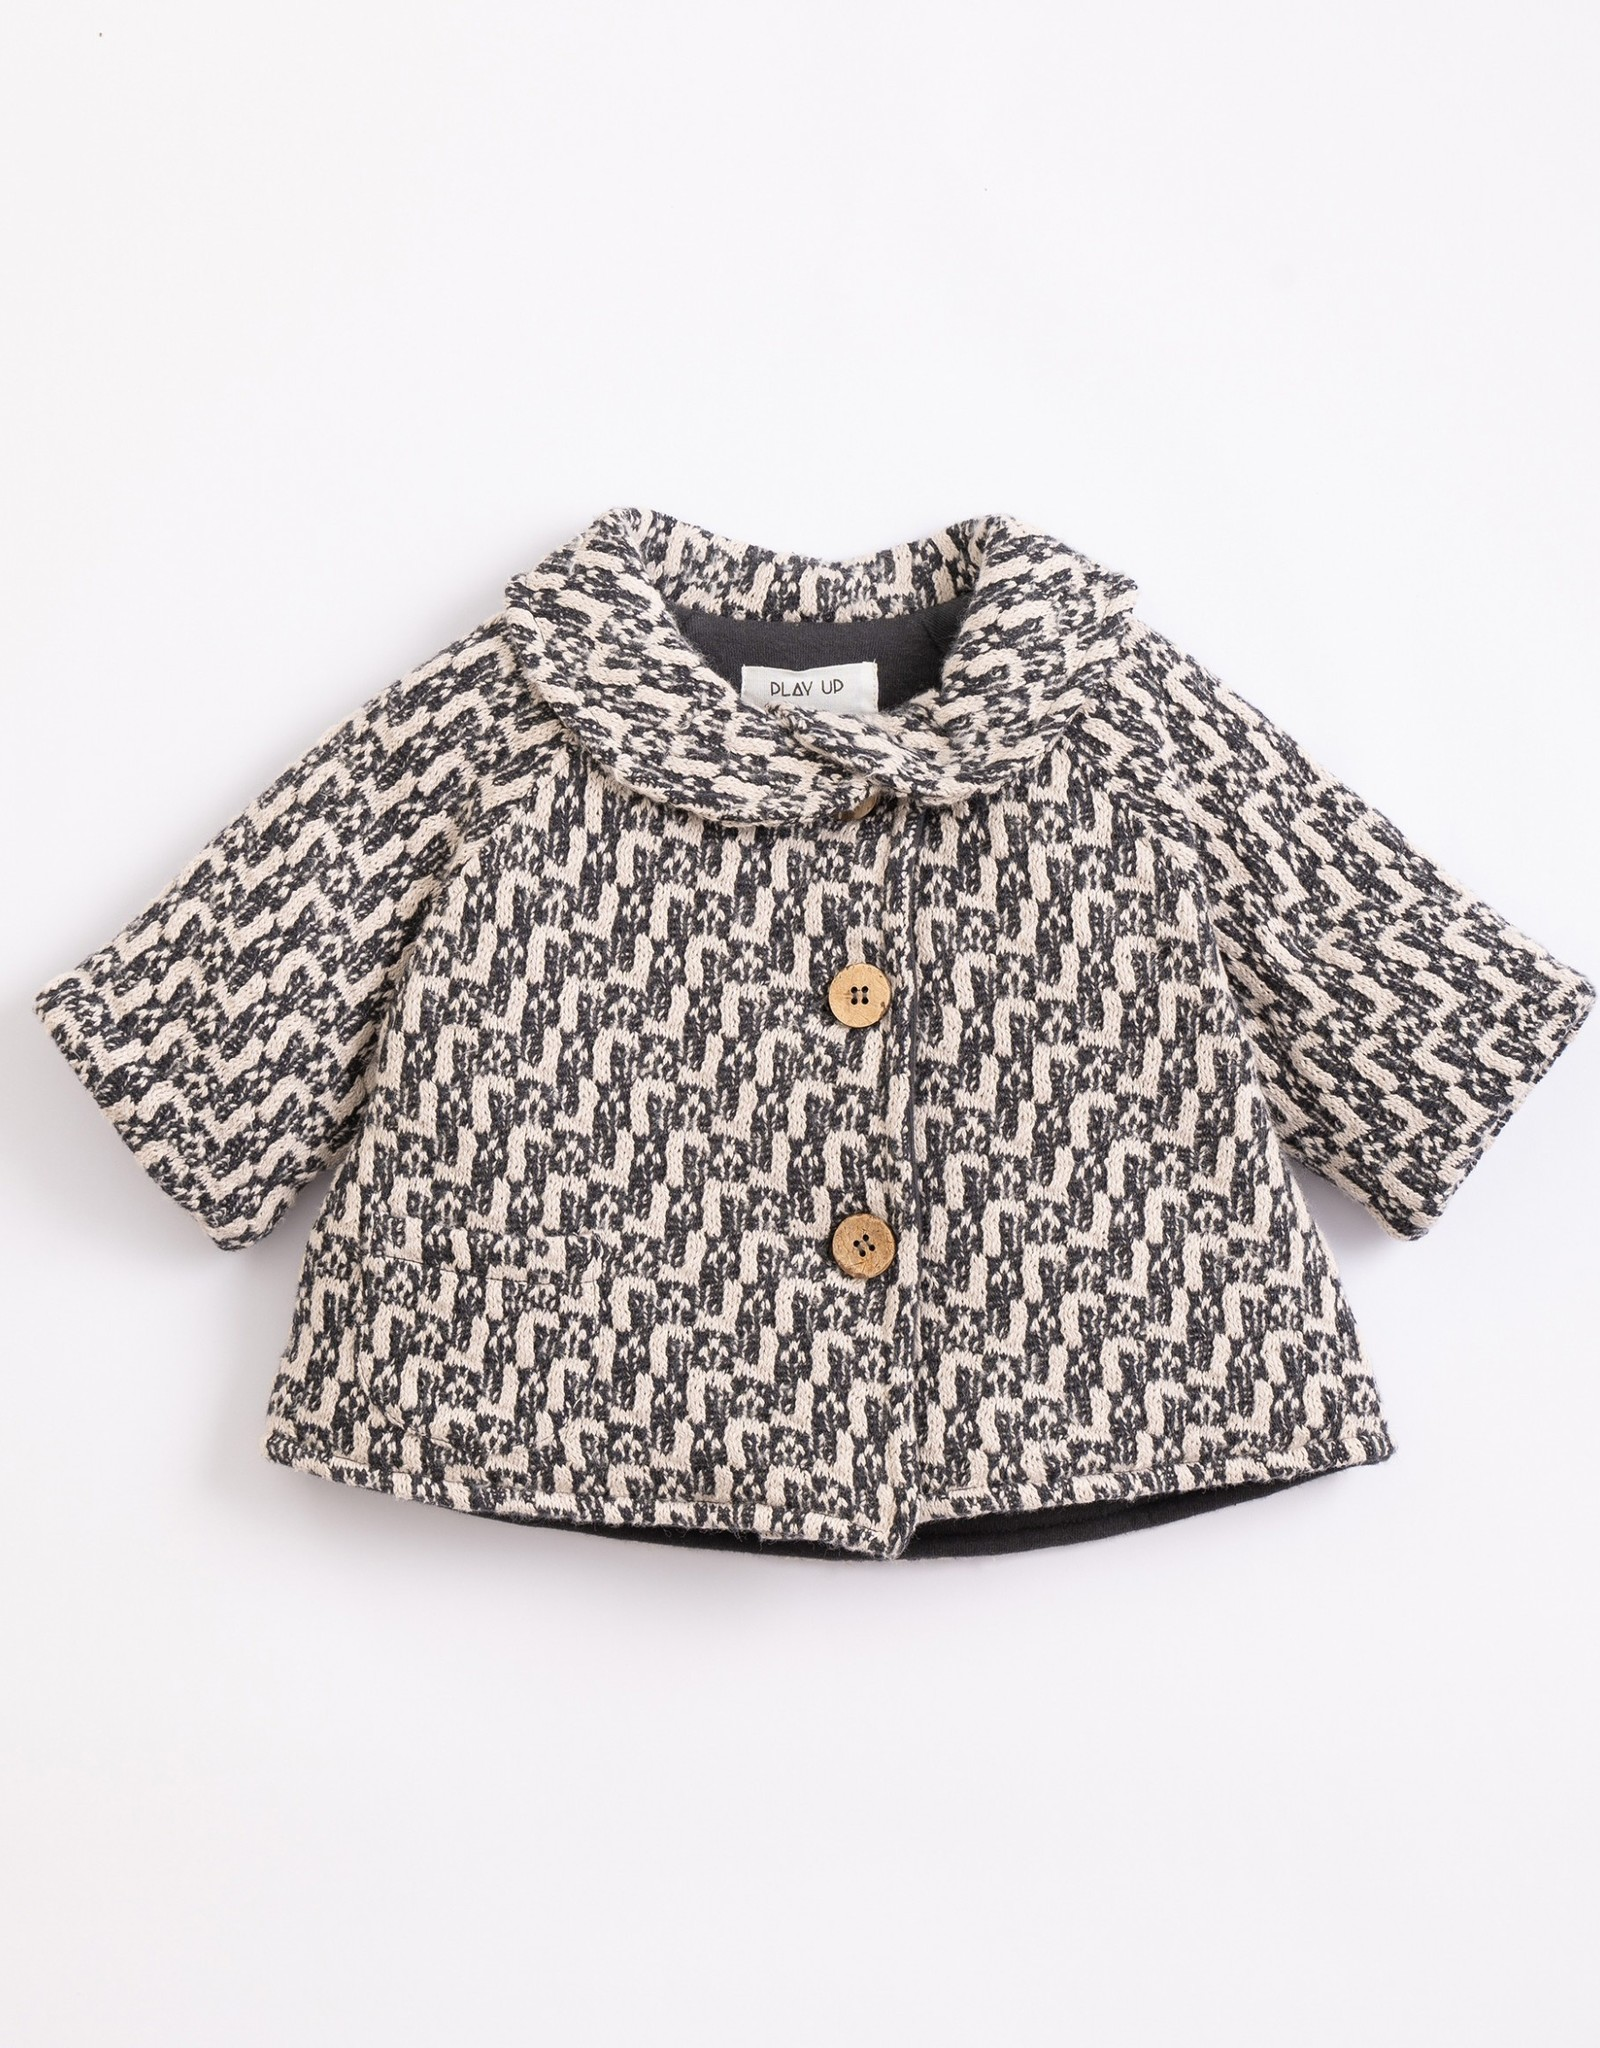 Play Up Play Up organic cotton lined jacket frame